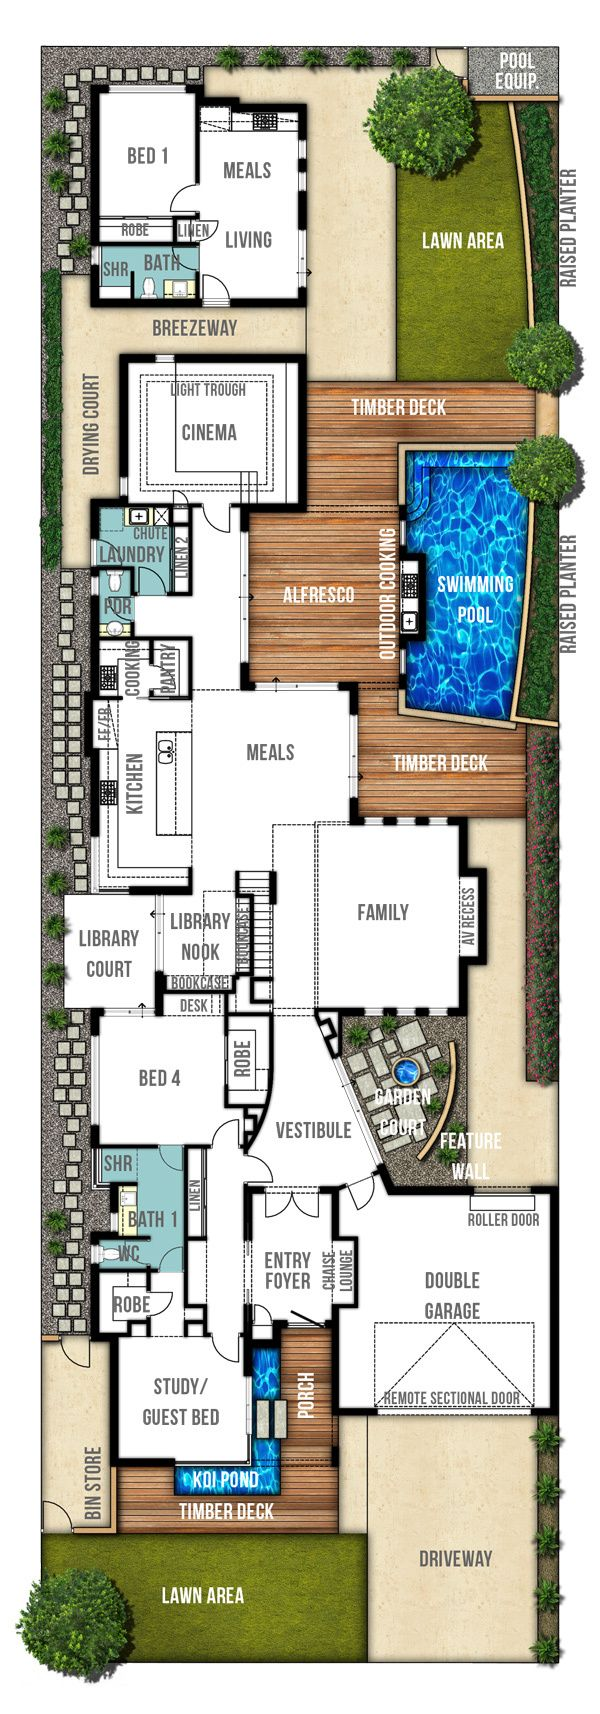 The Orient Another Fabulous Home Design By Boyd Design Perth House Plans 2 Storey Floor Plan Design House Plans